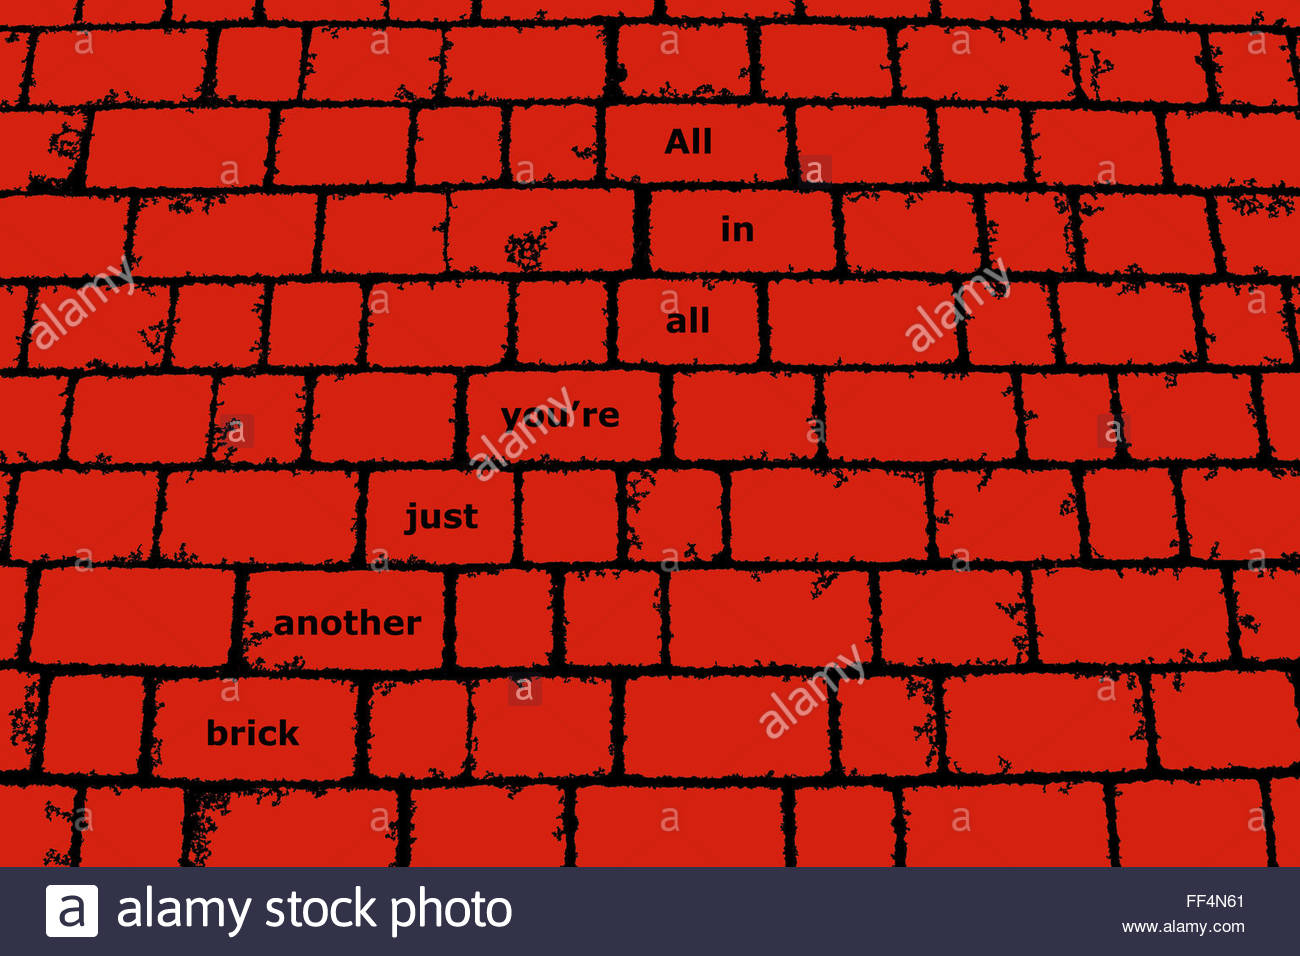 Digitally stylised red brick wall with the words: 'All in all you're just another brick'. Copy space - Stock Image